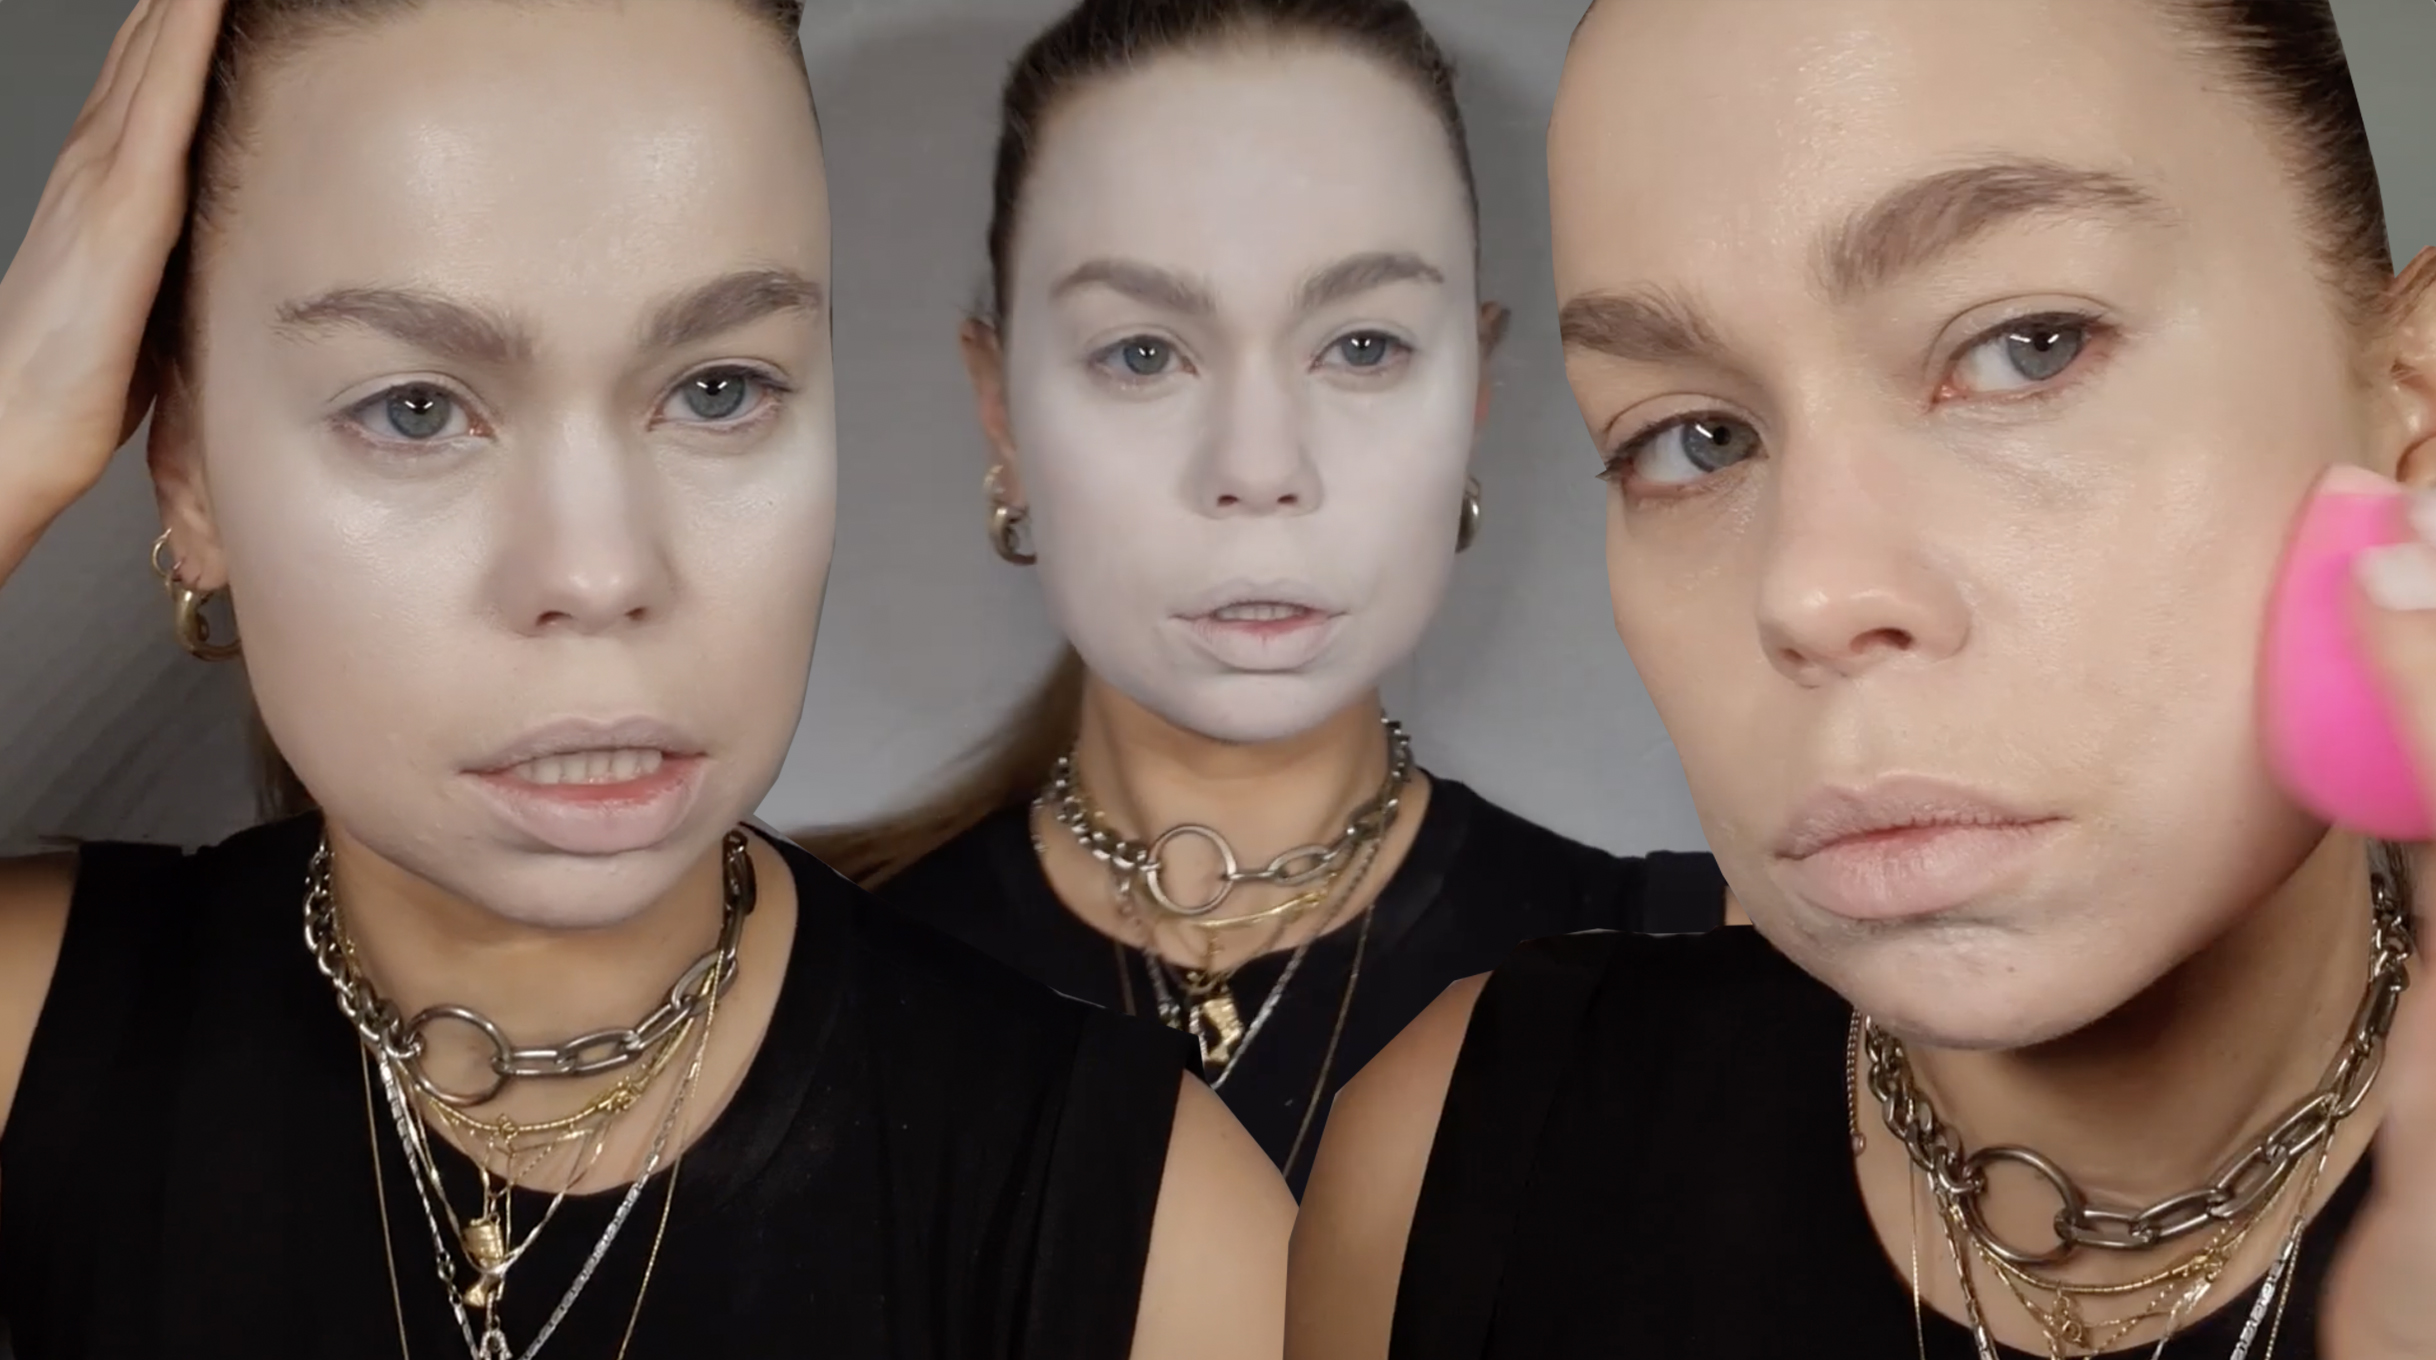 How-To Porcelain Skin